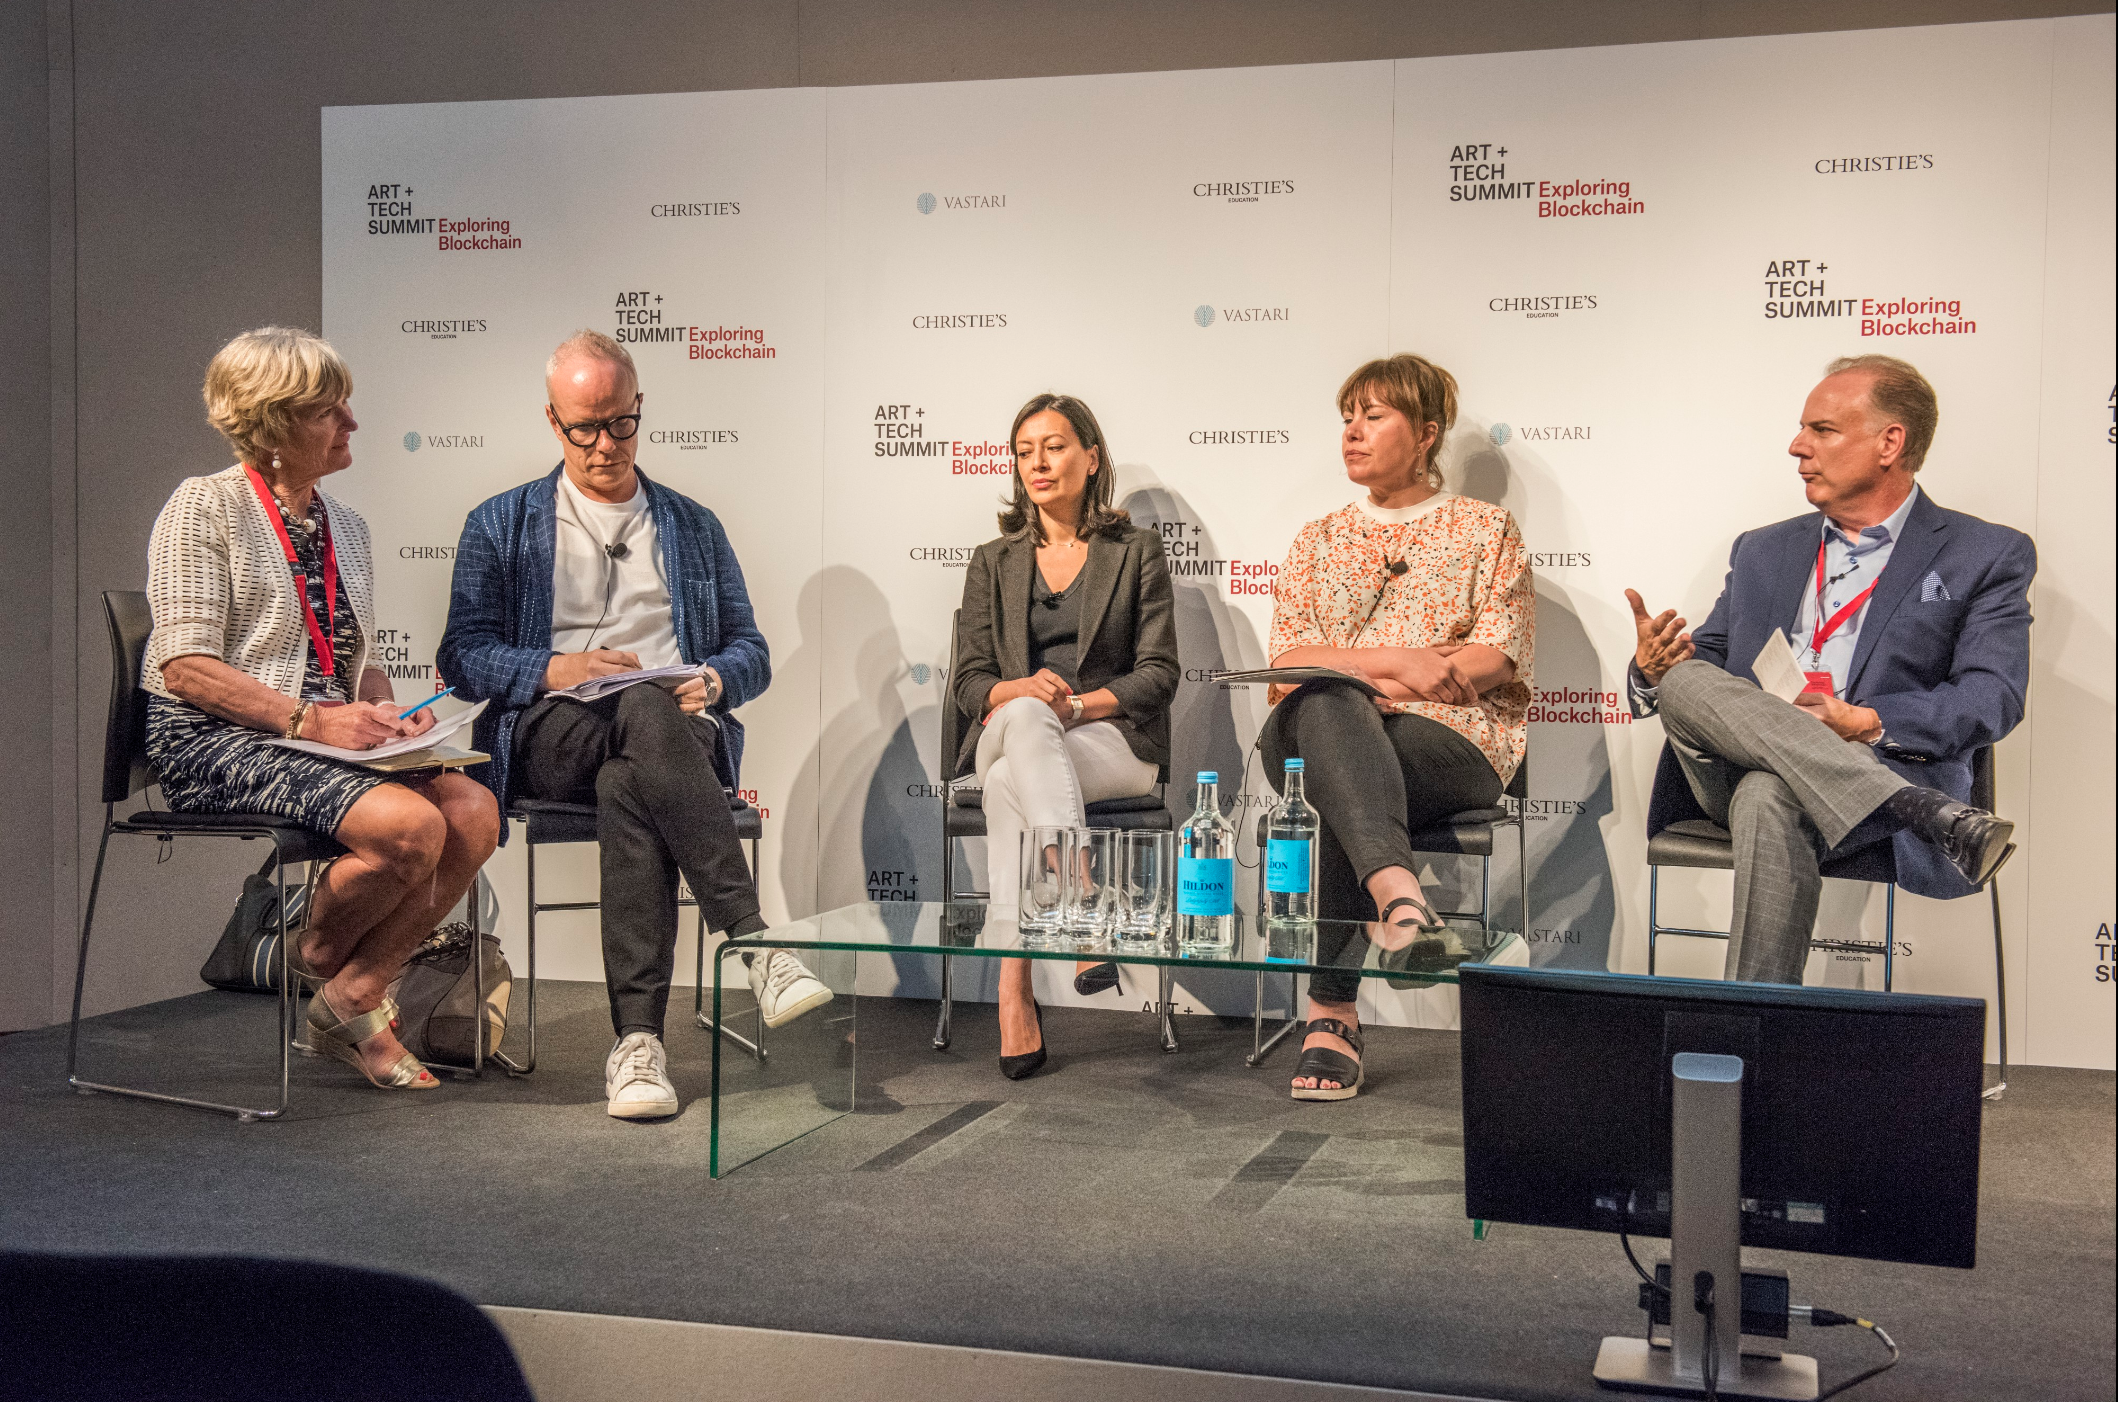 Panel Discussion: Key Take-aways & Reflections – Art Market at Christie's  Art + Tech Summit  in London. From left to right: Georgina Adam, Financial Times and The Art Newspaper - Hans Ulrich Obrist, Serpentine - Sylvie Gleises, AXA Art - Kati Price, Victoria & Albert Museum - Richard Entrup, Christie's